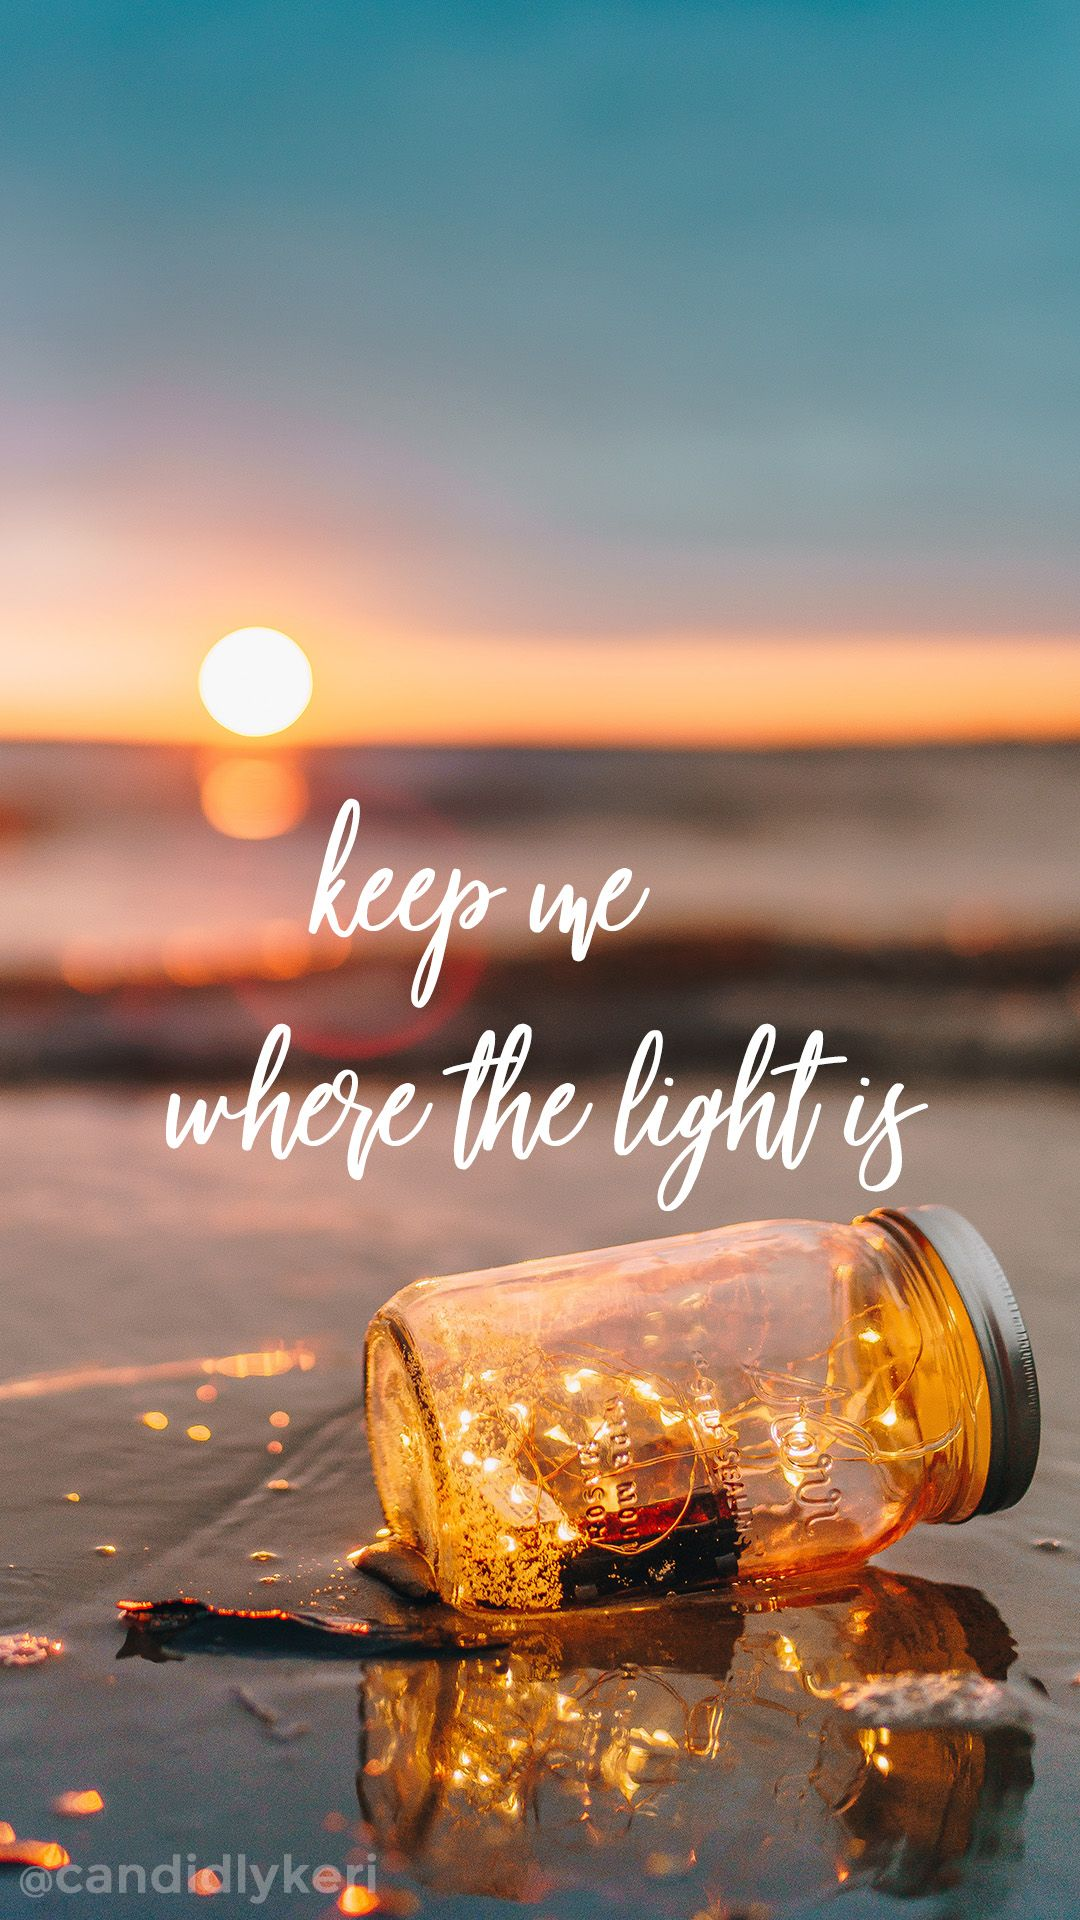 Keep me where the light is quote sunset mason jar wallpaper you can download for free on the ...